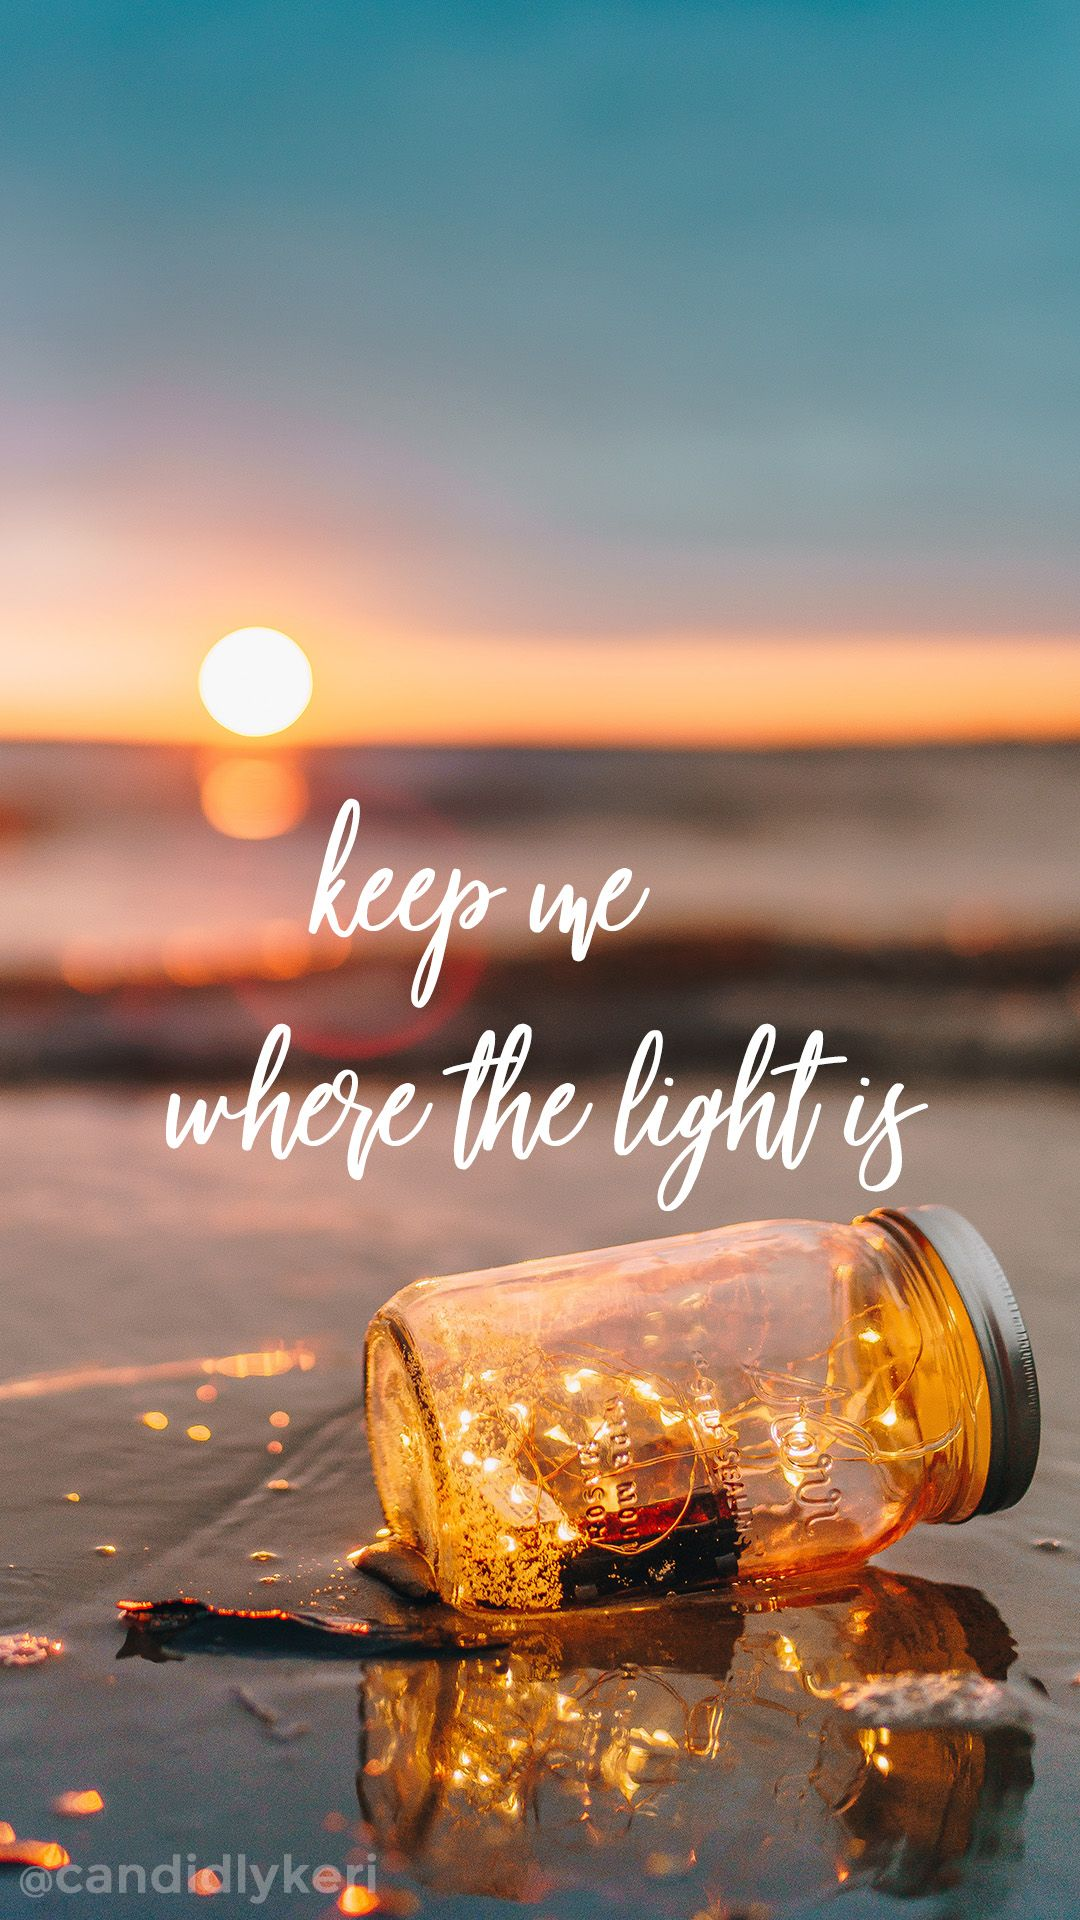 Keep me where the light is quote sunset mason jar wallpaper you can download for free on the ...